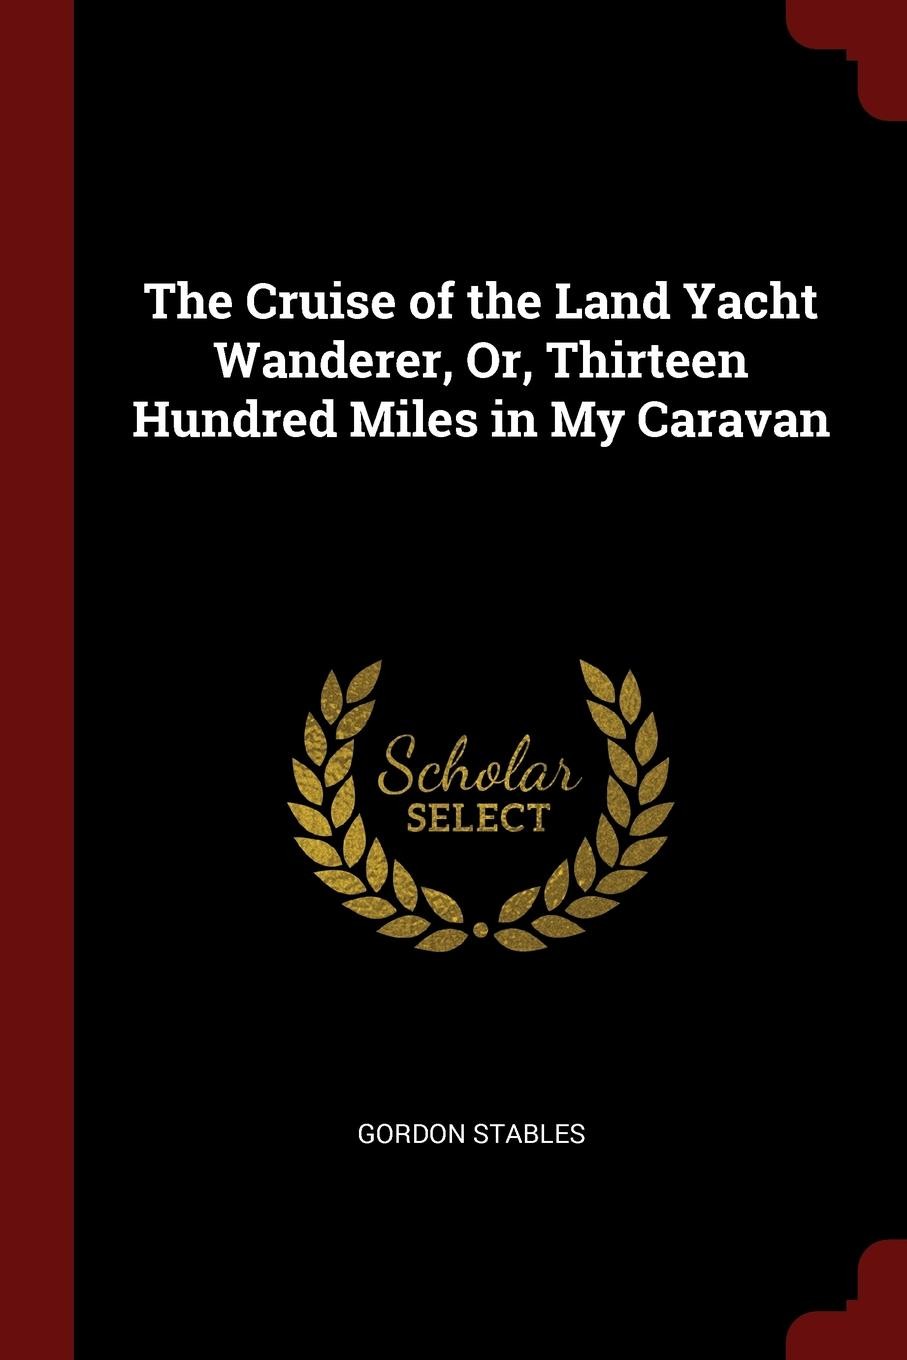 Gordon Stables The Cruise of the Land Yacht Wanderer, Or, Thirteen Hundred Miles in My Caravan stables gordon the cruise of the land yacht wanderer or thirteen hundred miles in my caravan